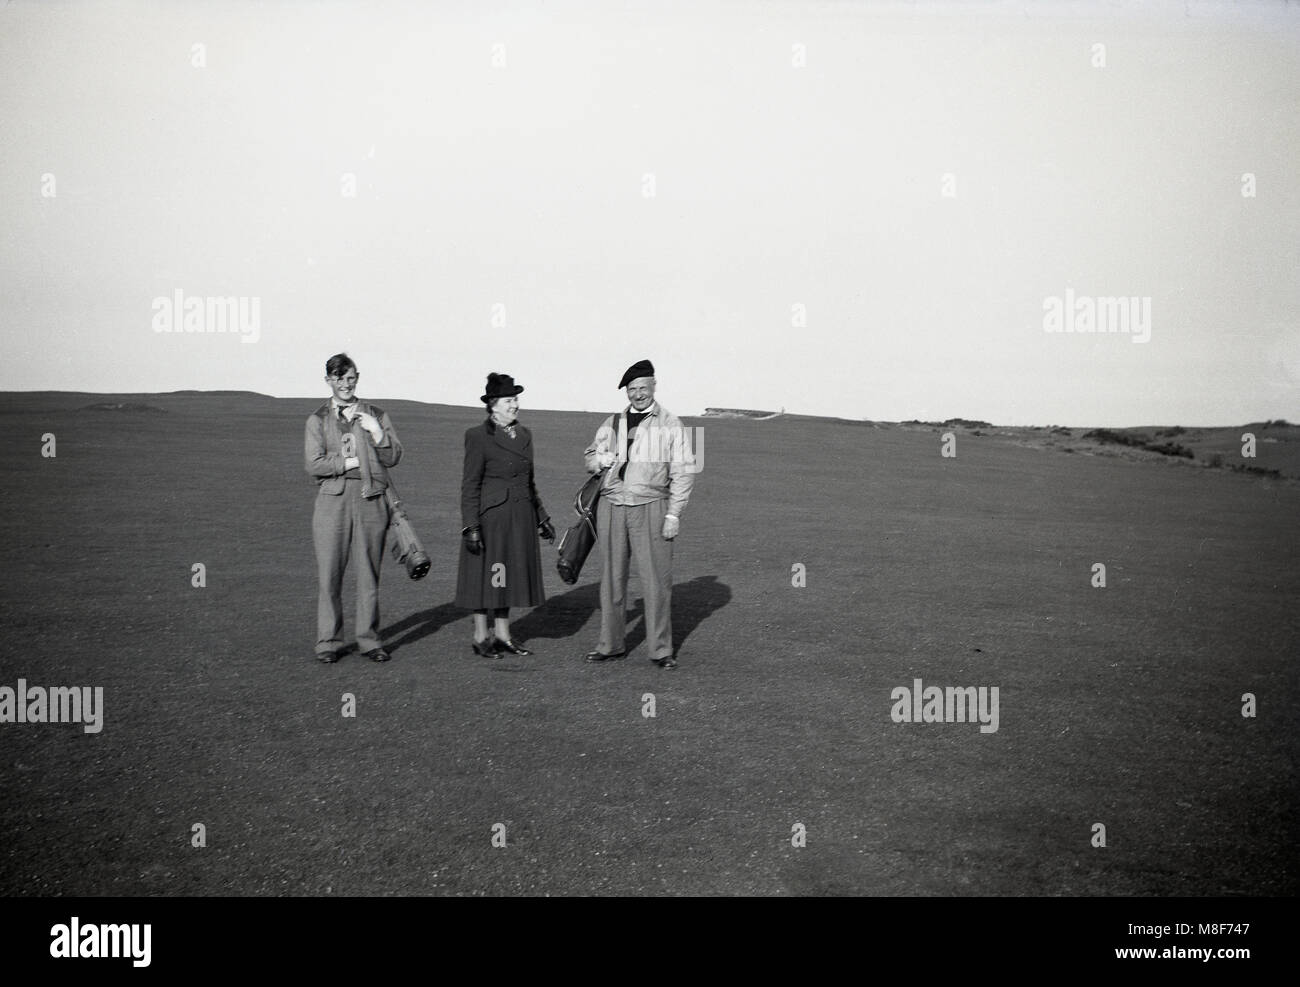 1930s, an eldlery male golfer with his wife and young adult golfer son standing together with their golf clubs on - Stock Image